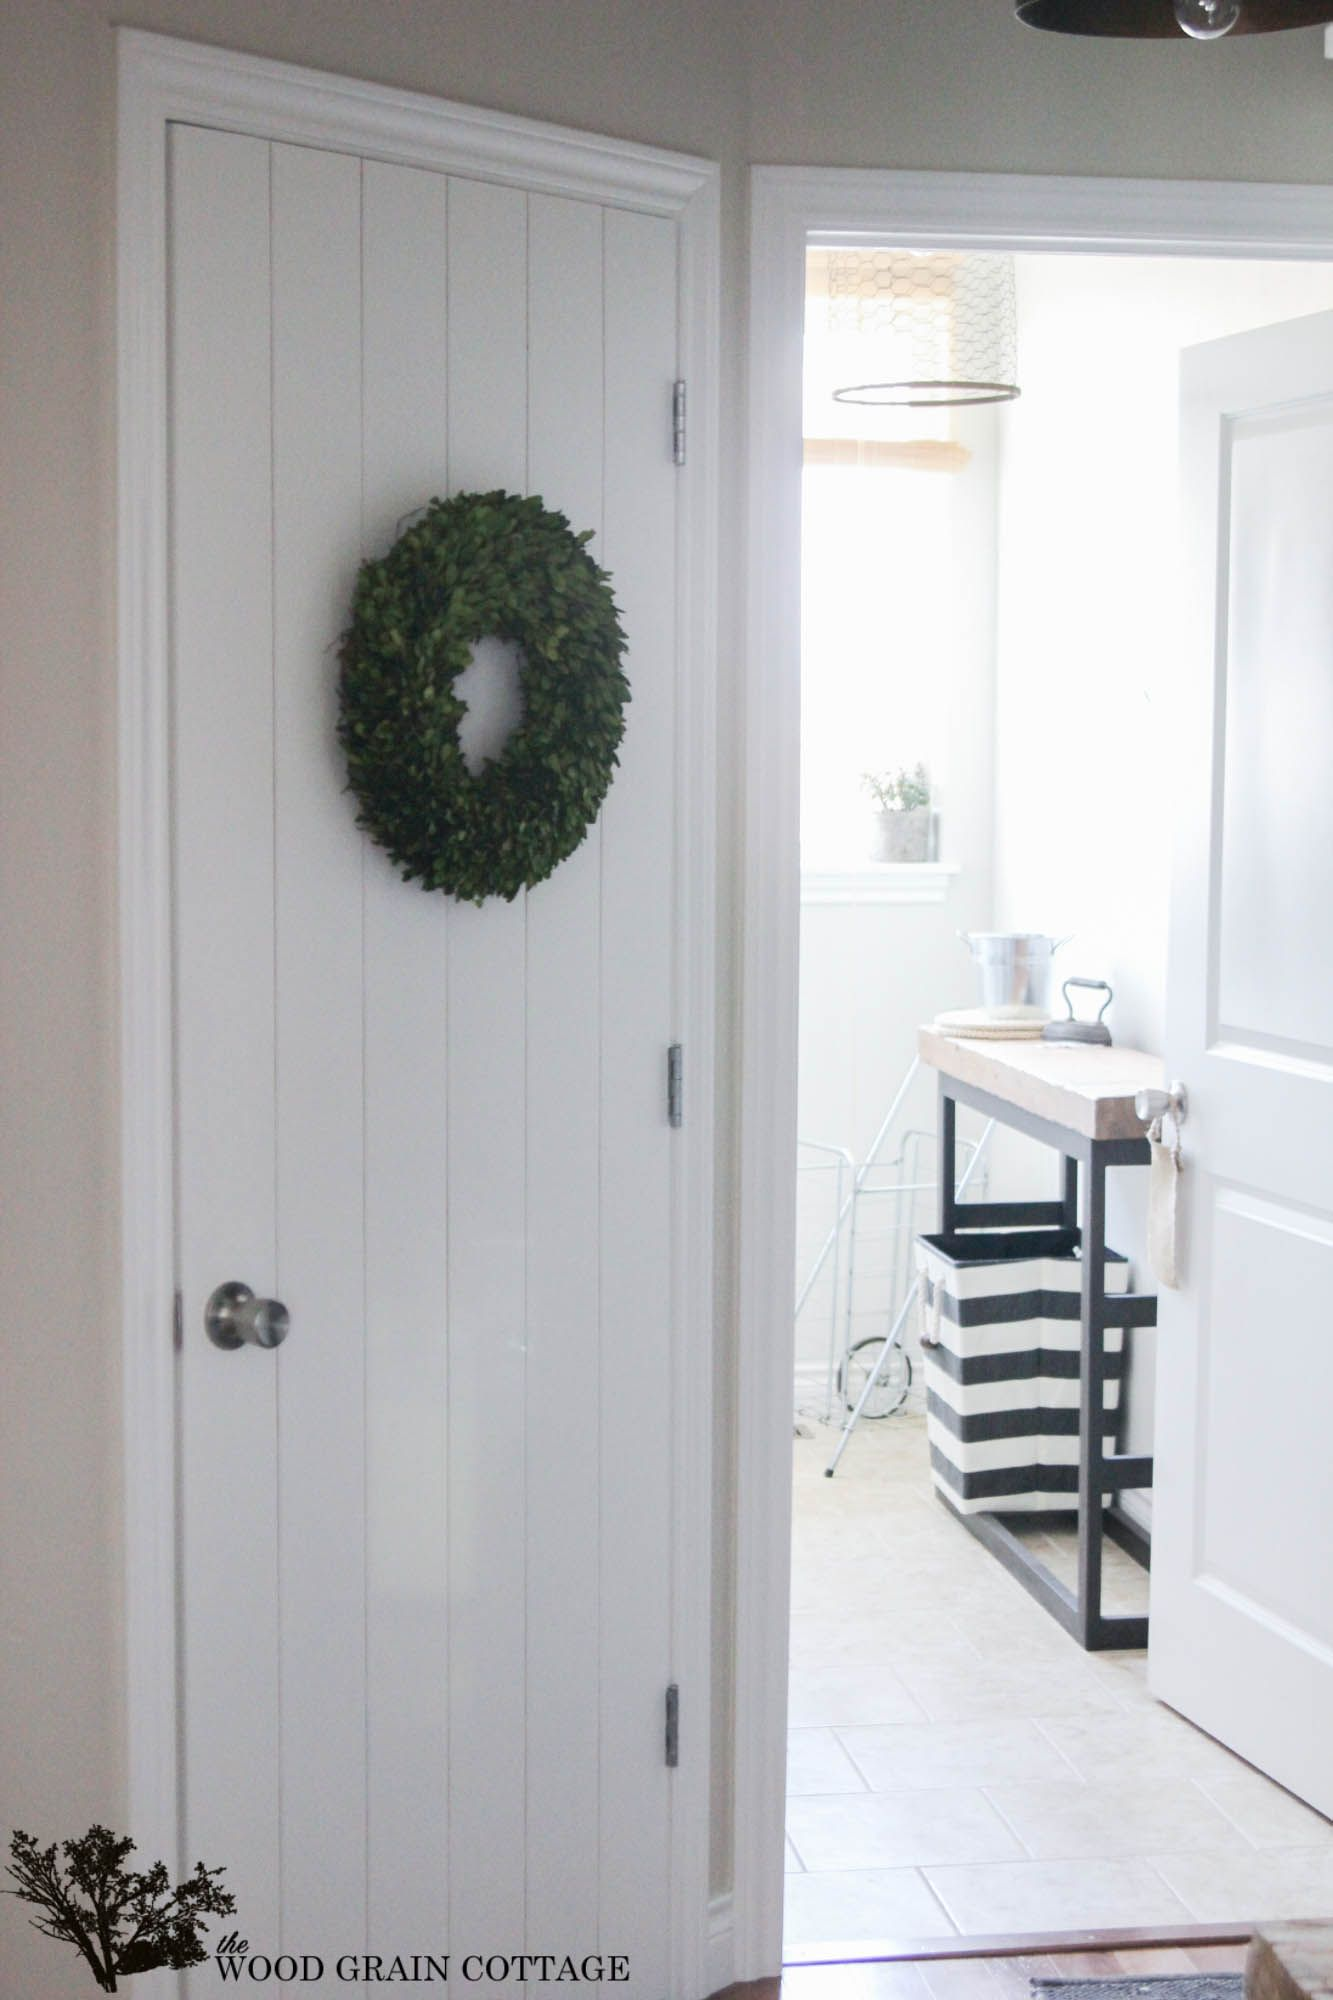 DIY How to Dress Up a Plain Luan Door - great beginneru0027s project shows how to turn a plain door into a rustic farmhouse door using underlayment - ia The ... & How to Wood Plank a Door | Wood grain Rustic farmhouse and Interior ...